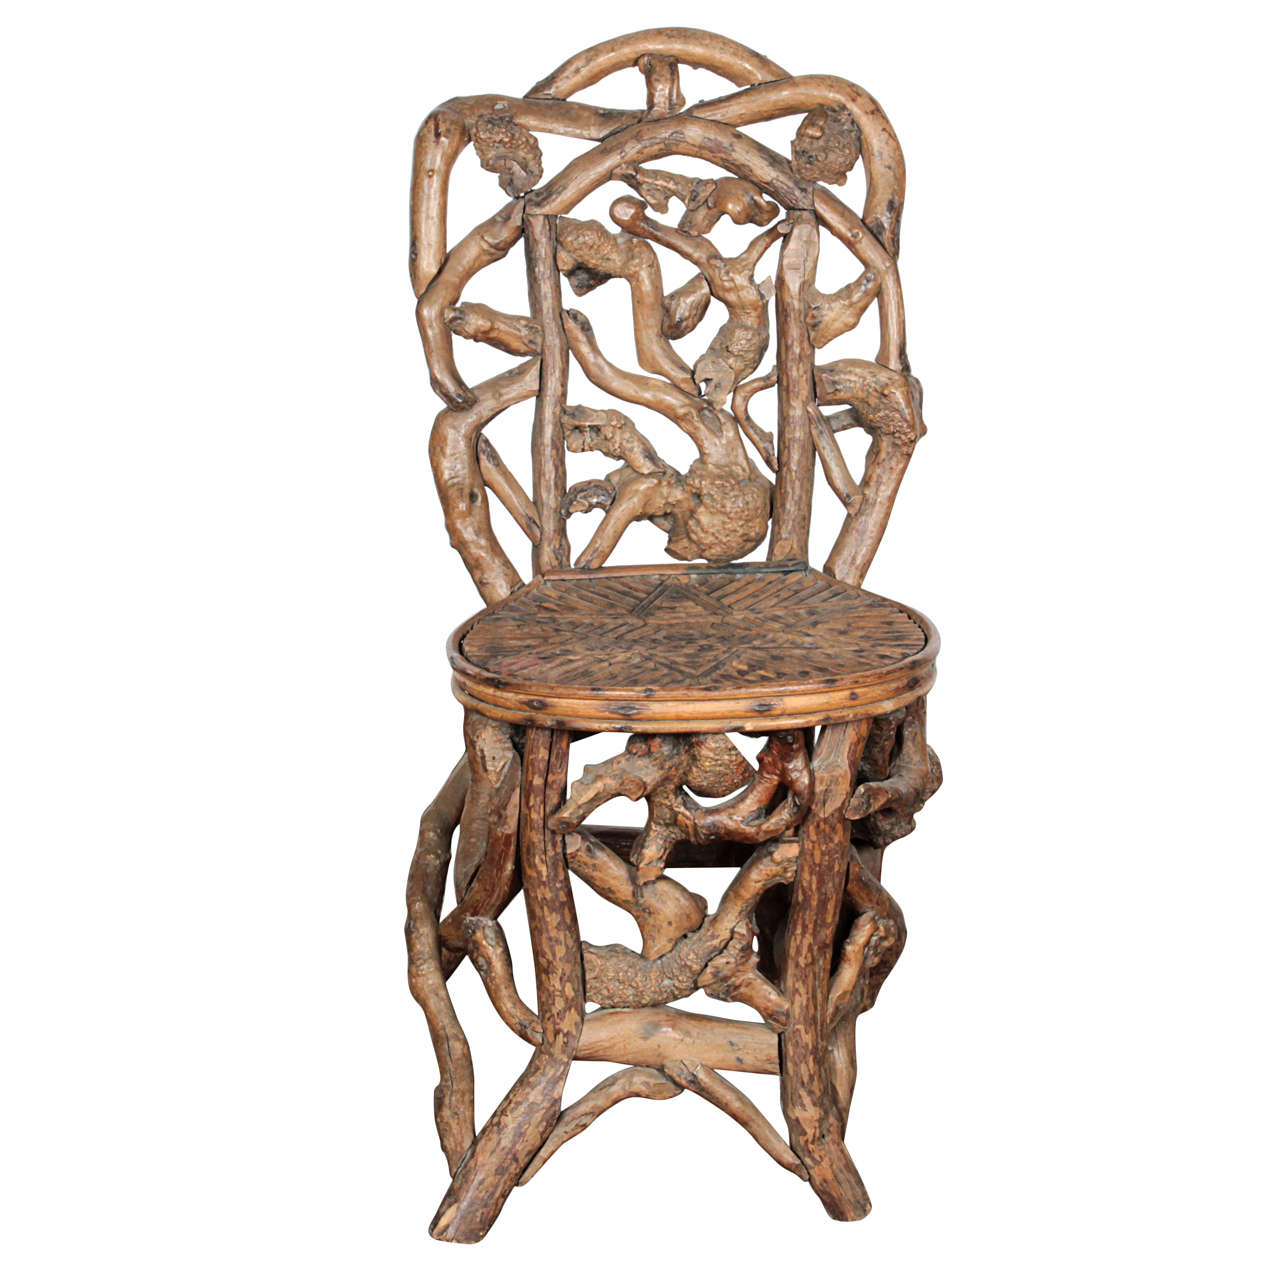 Driftwood Chair Artisan Driftwood Side Chair For Sale At 1stdibs